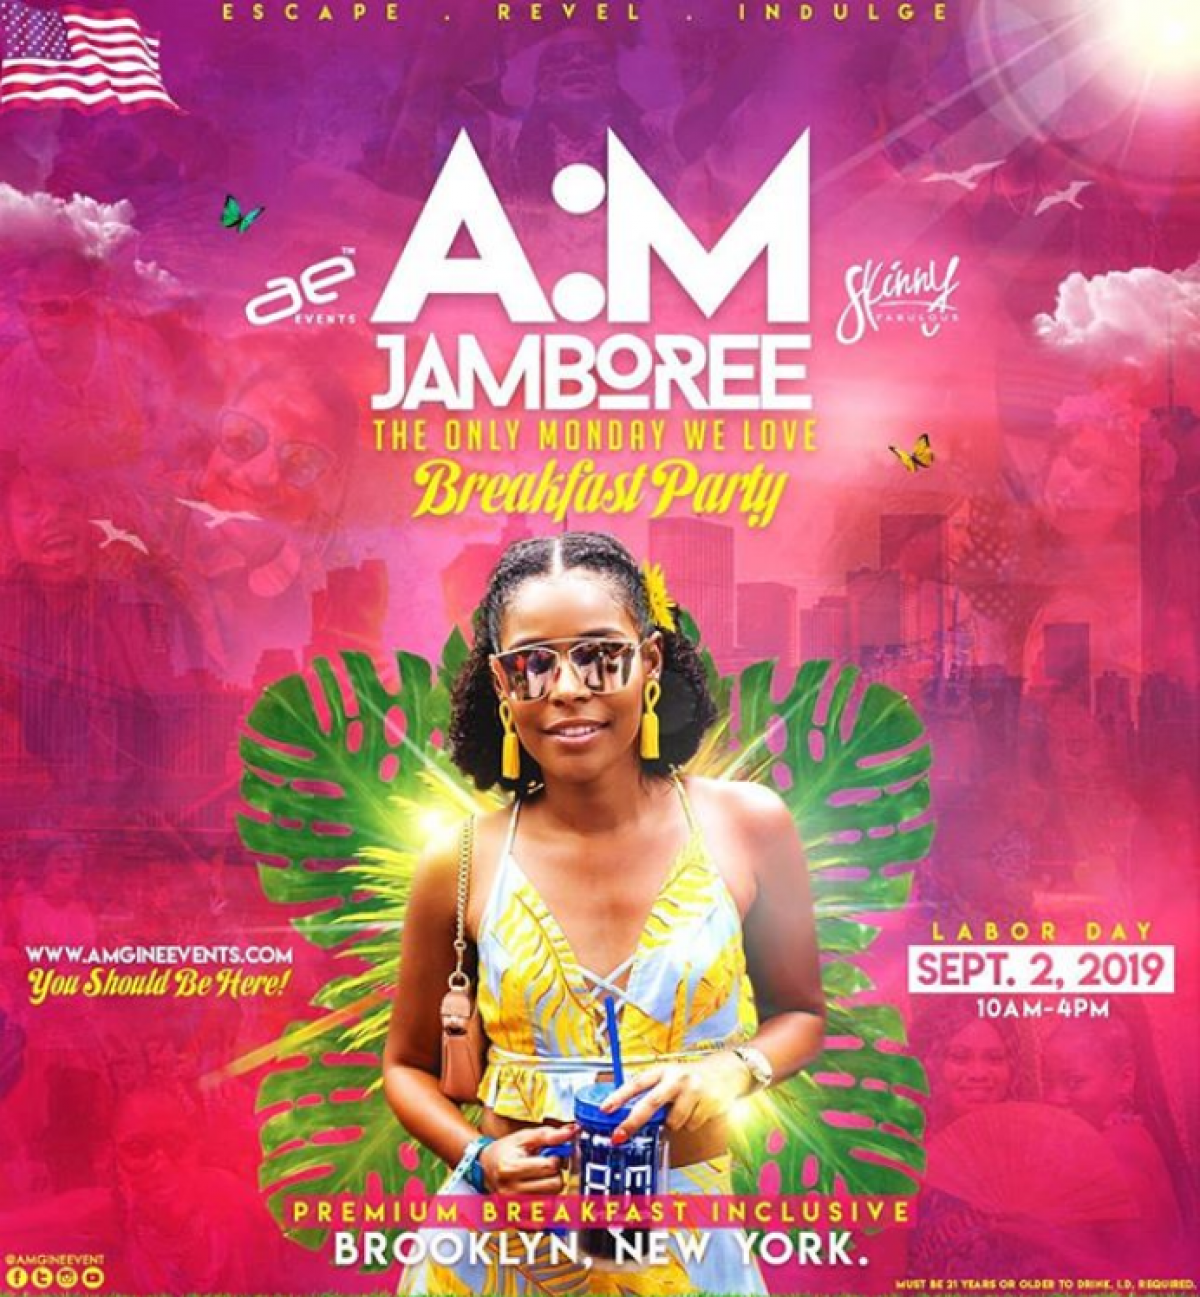 A:M Jamboree flyer or graphic.